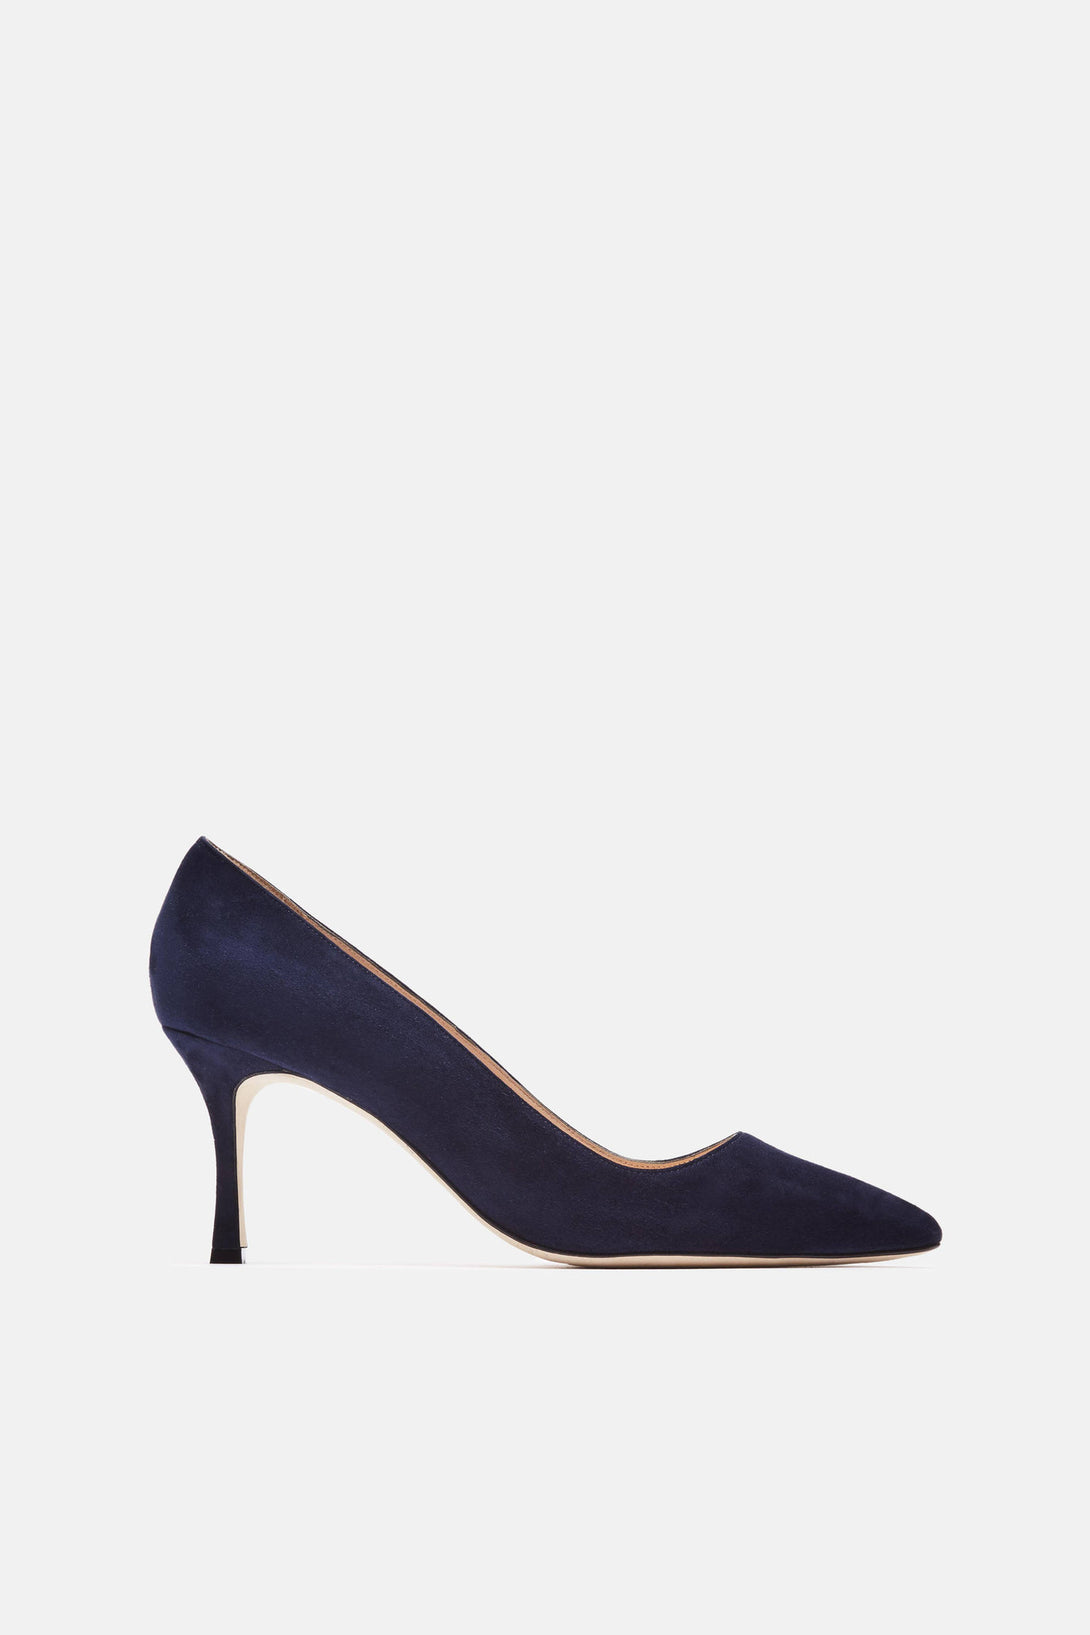 BB 70mm Pump - Navy Suede